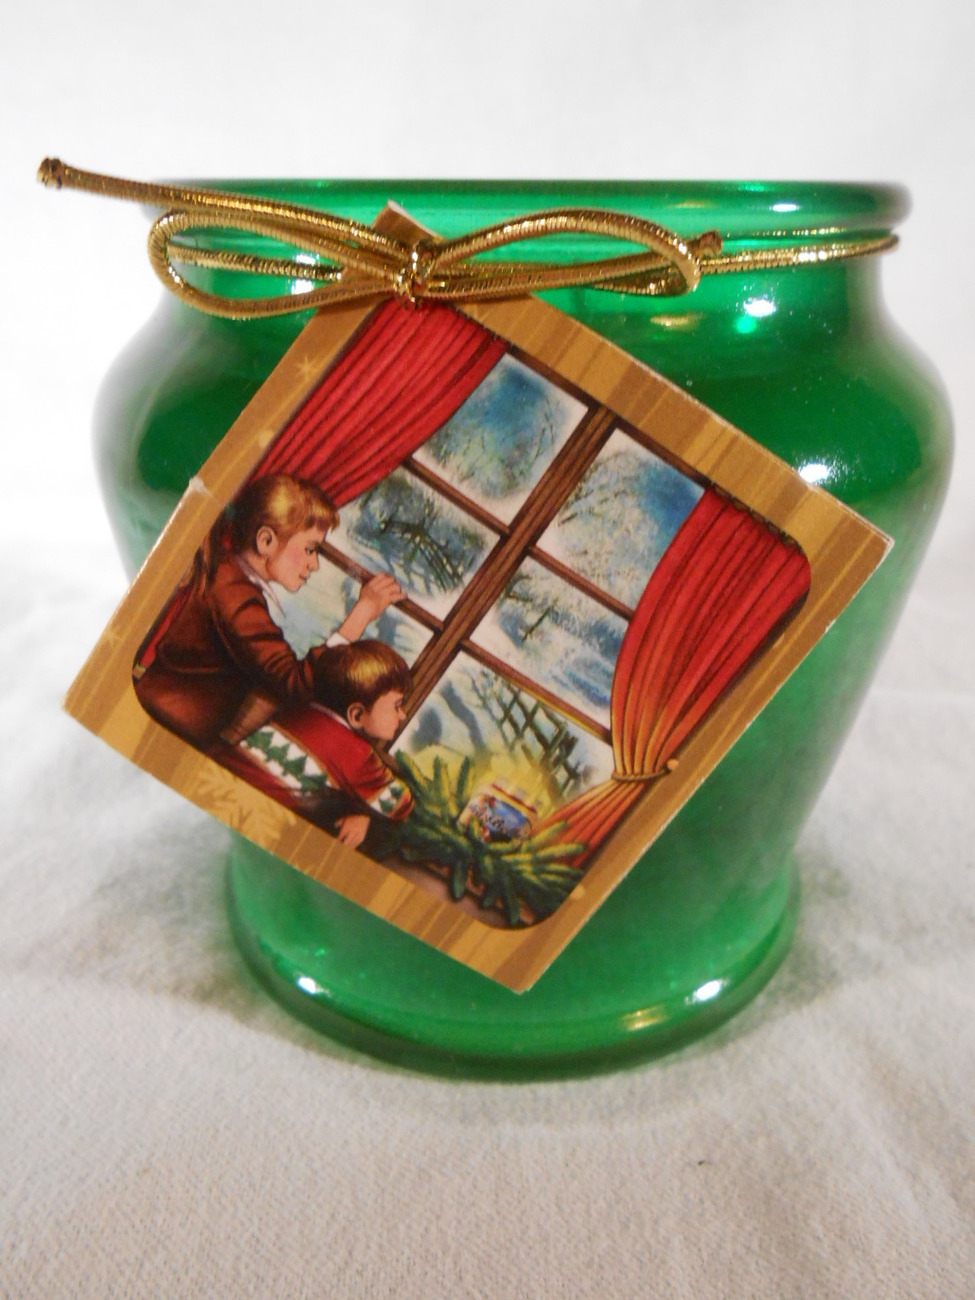 Snow Place Like Home SCENTED CANDLE Christmas Pine Scent Mia Bella's Candles